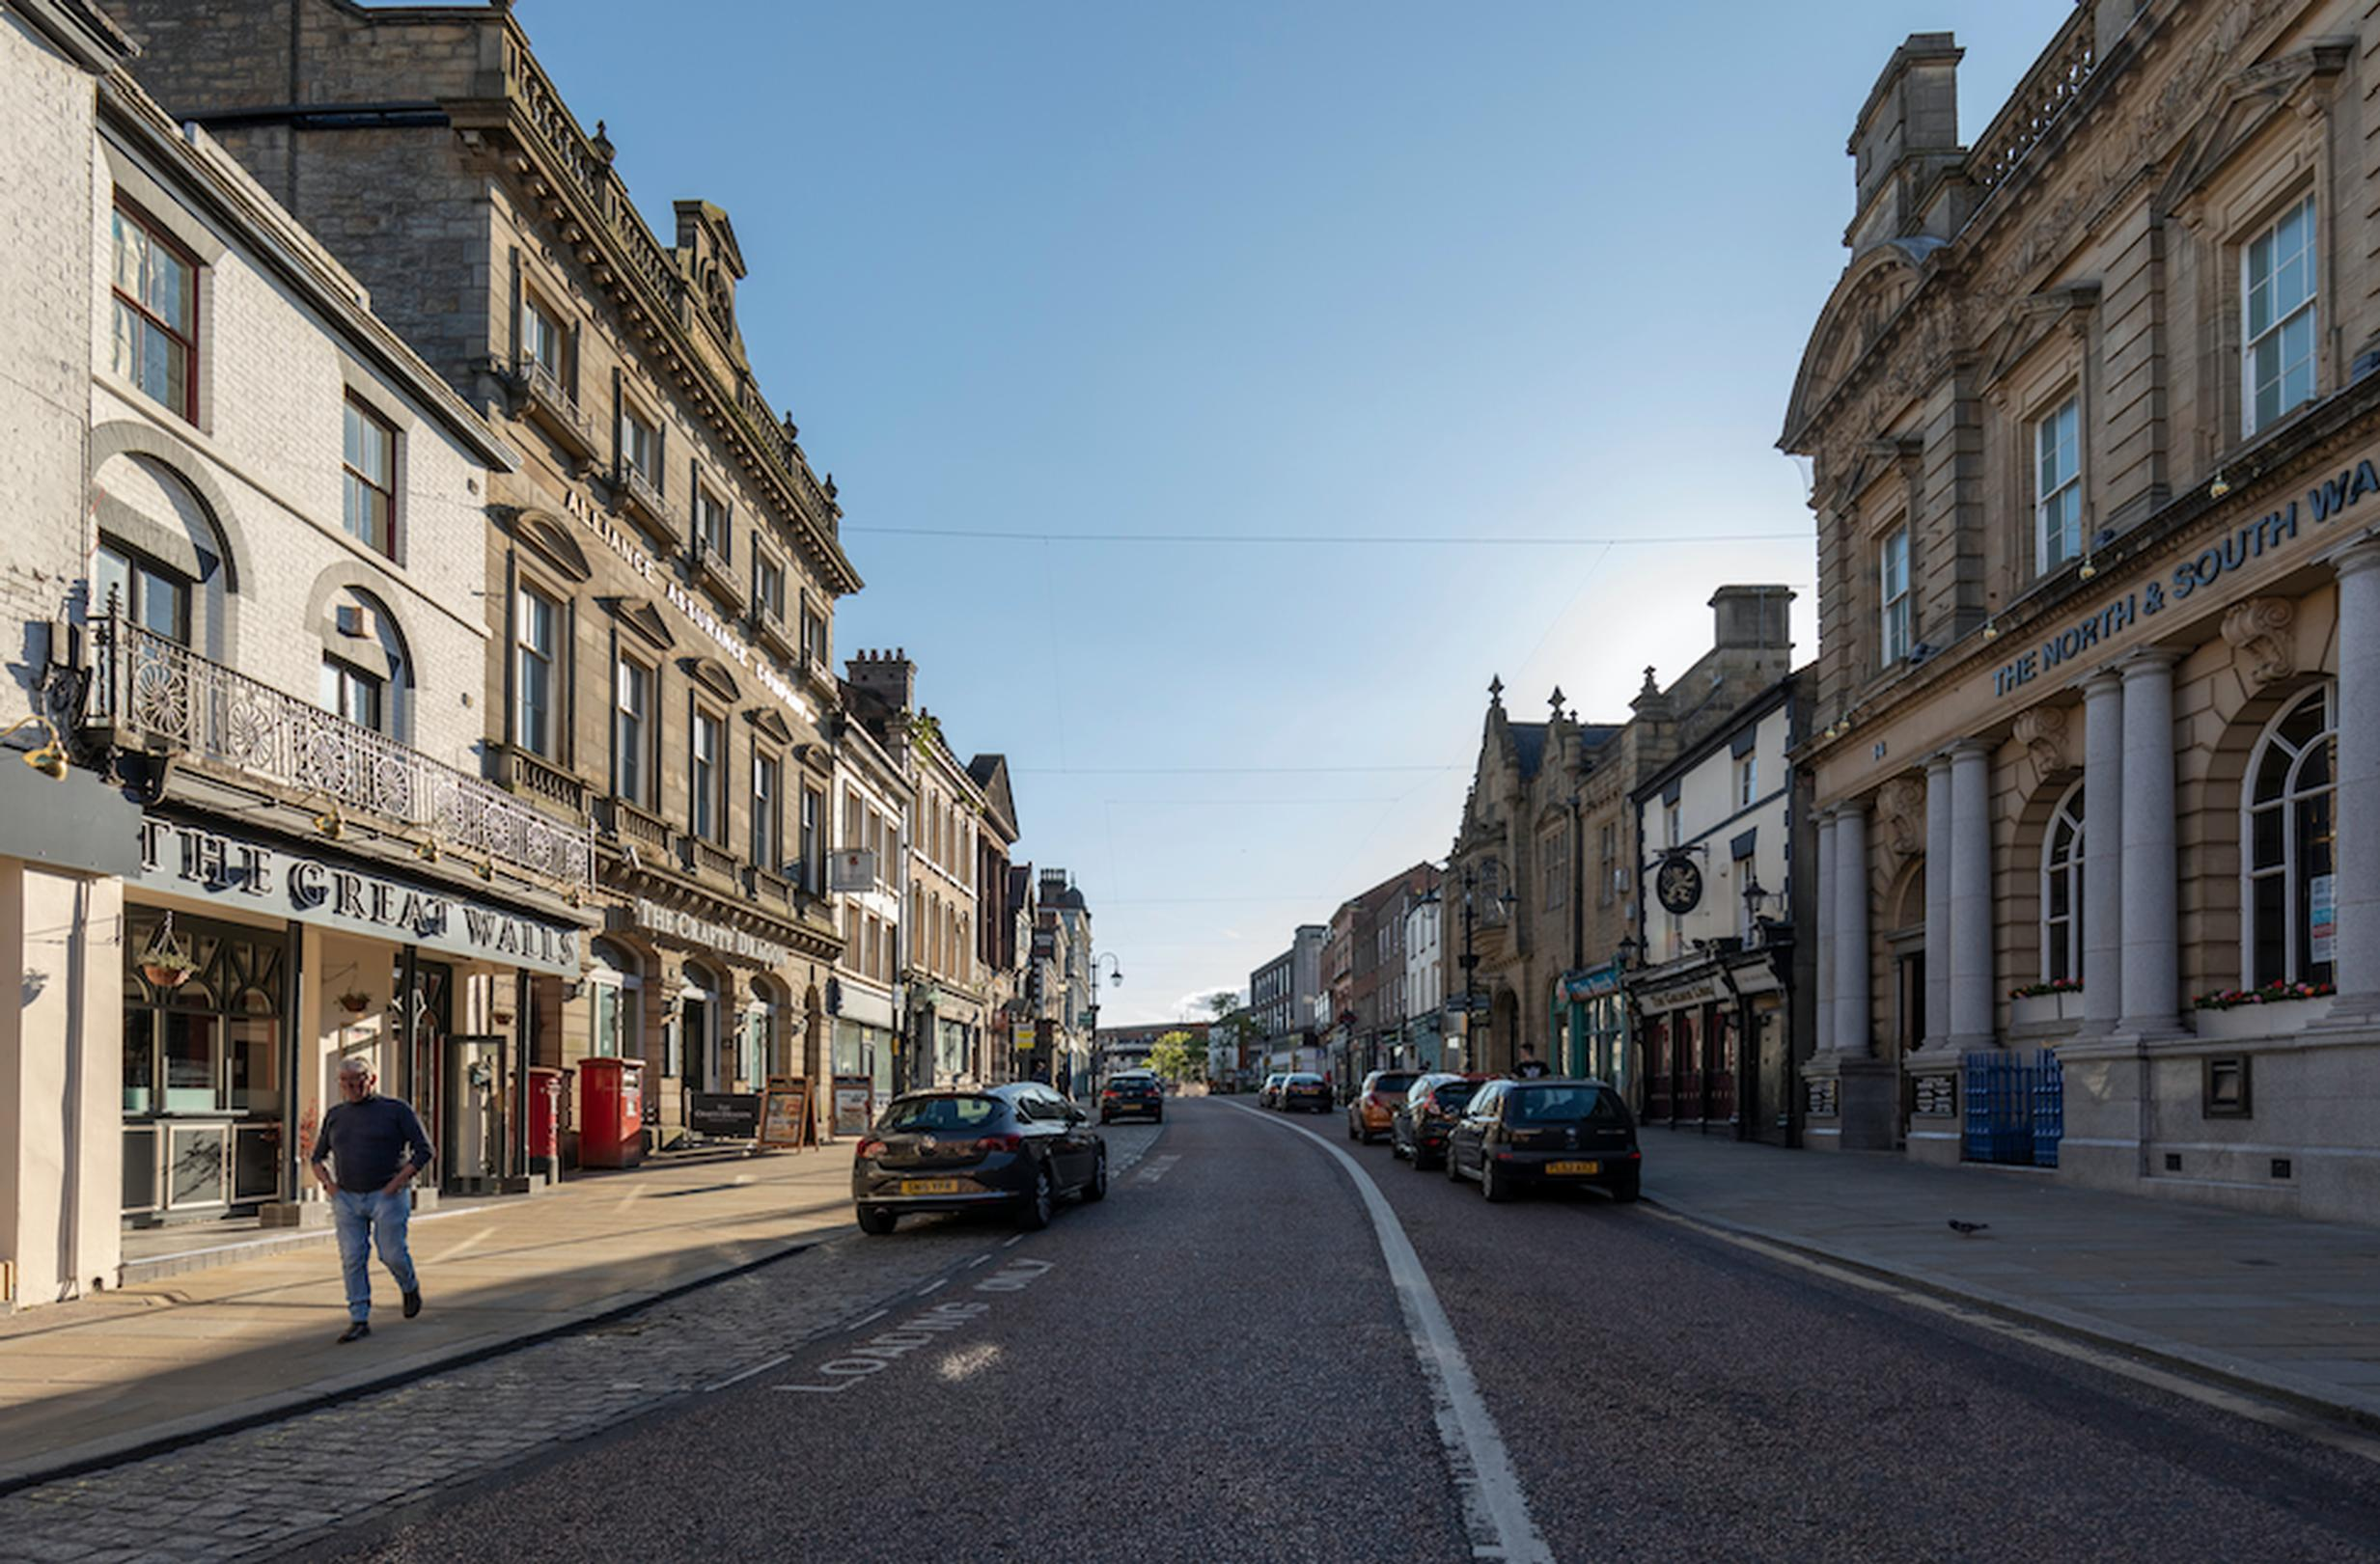 The Welsh Government wants to revitalise town centres in a sustainable manner